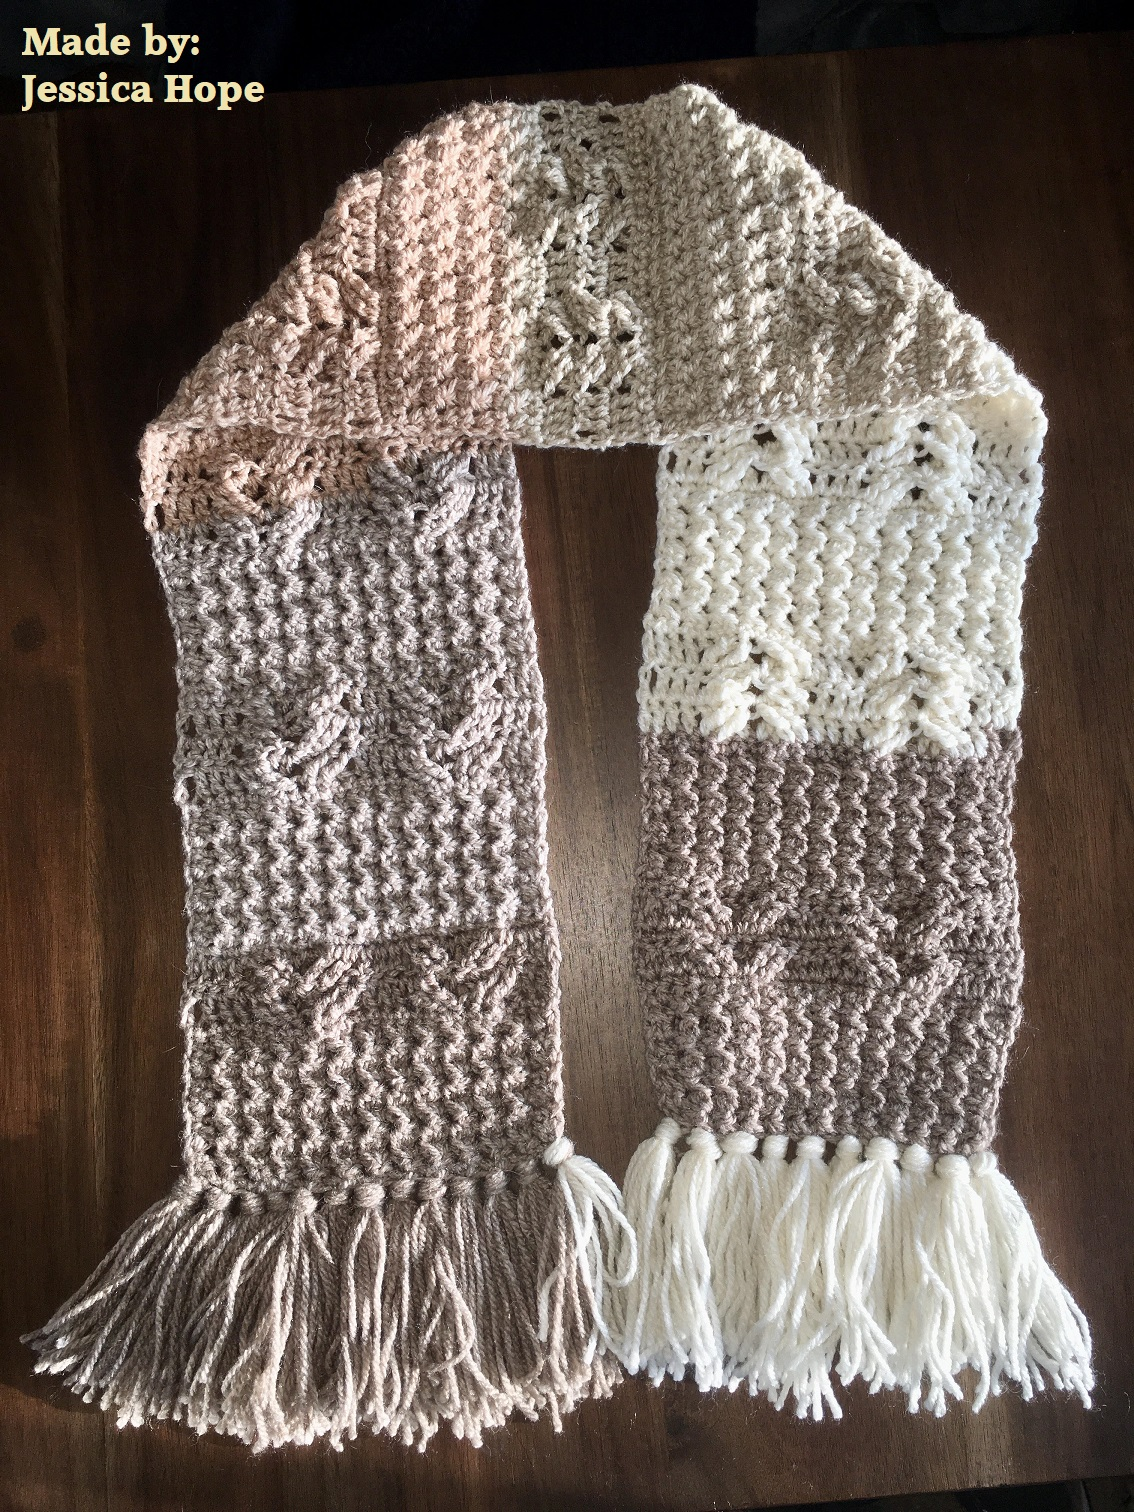 Most Crochet Pictures Shared During The Year Free